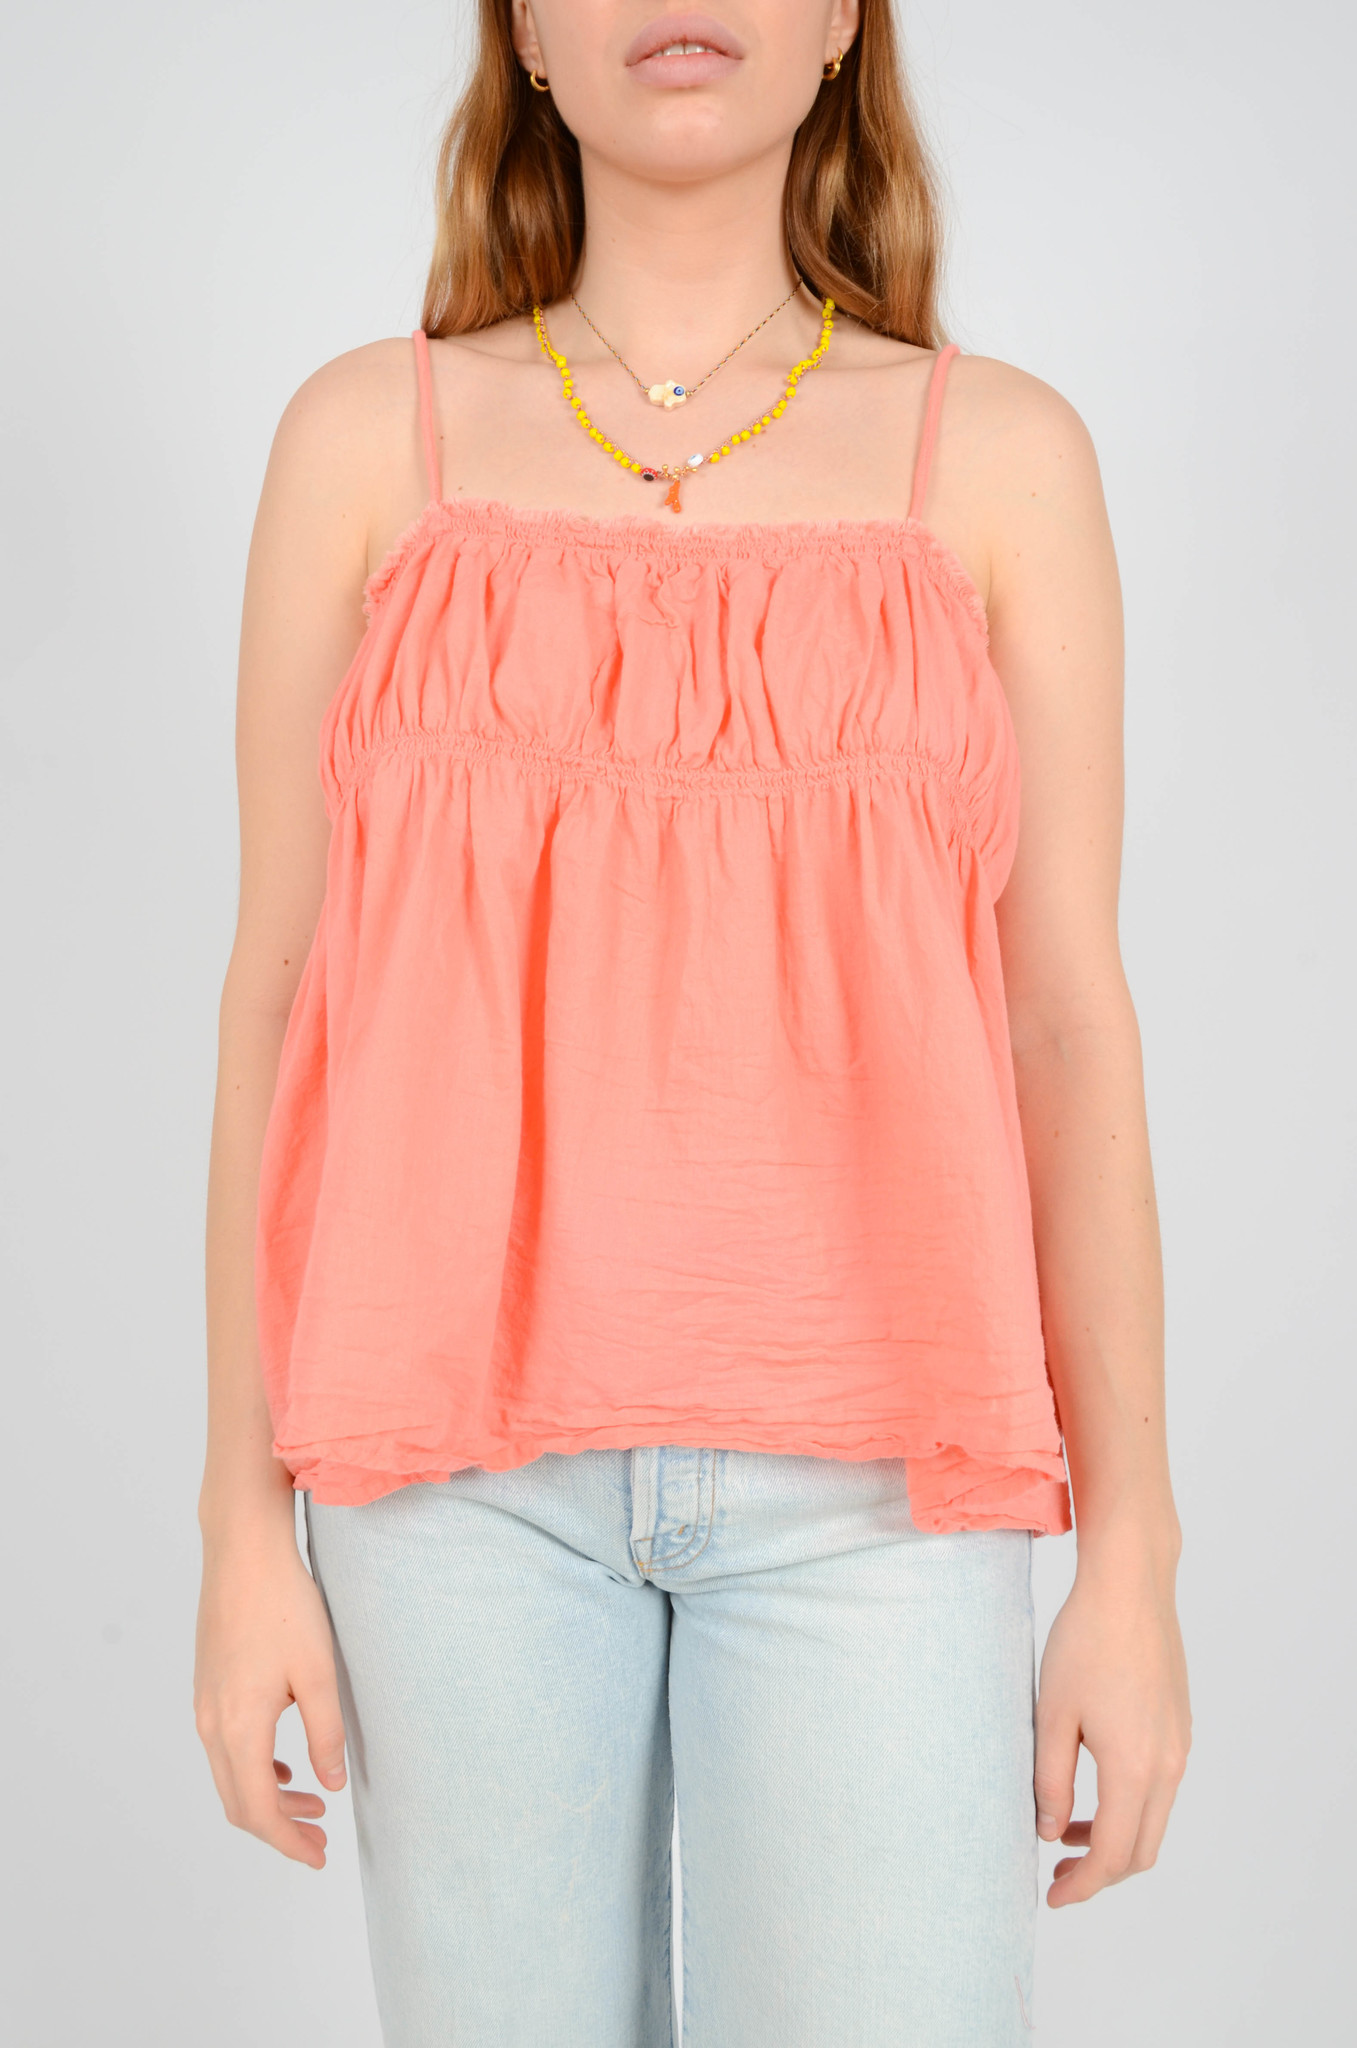 HAILEY TANKTOP IN CORAL-1